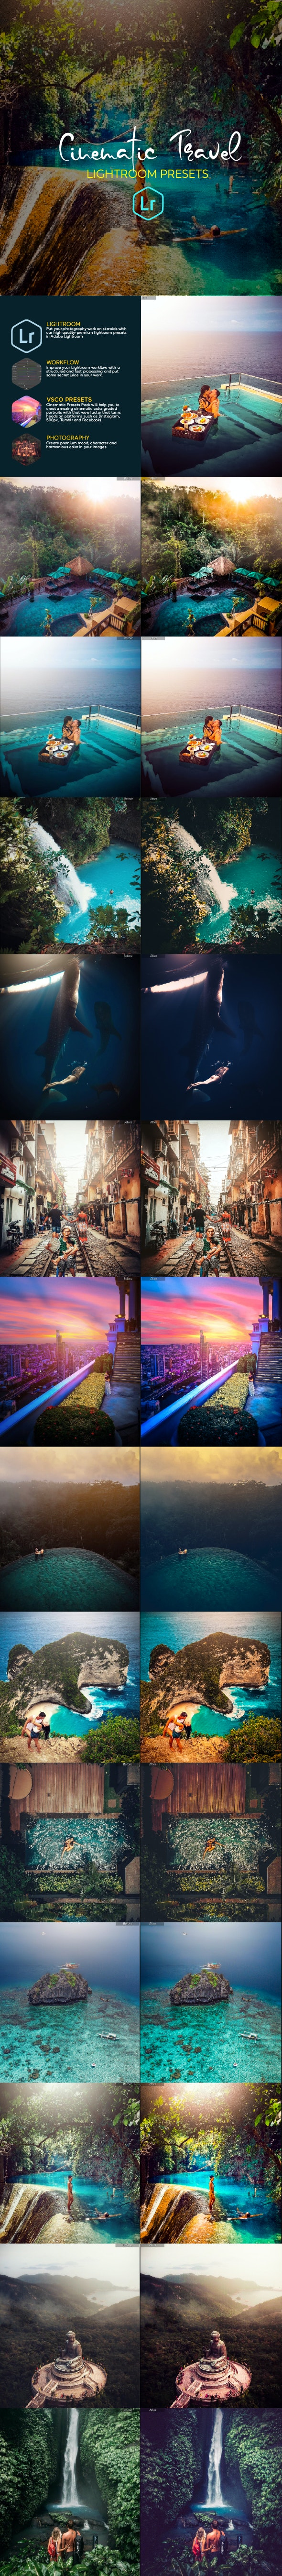 30 Cinematic Travel Lightroom Presets - Lightroom Presets Add-ons